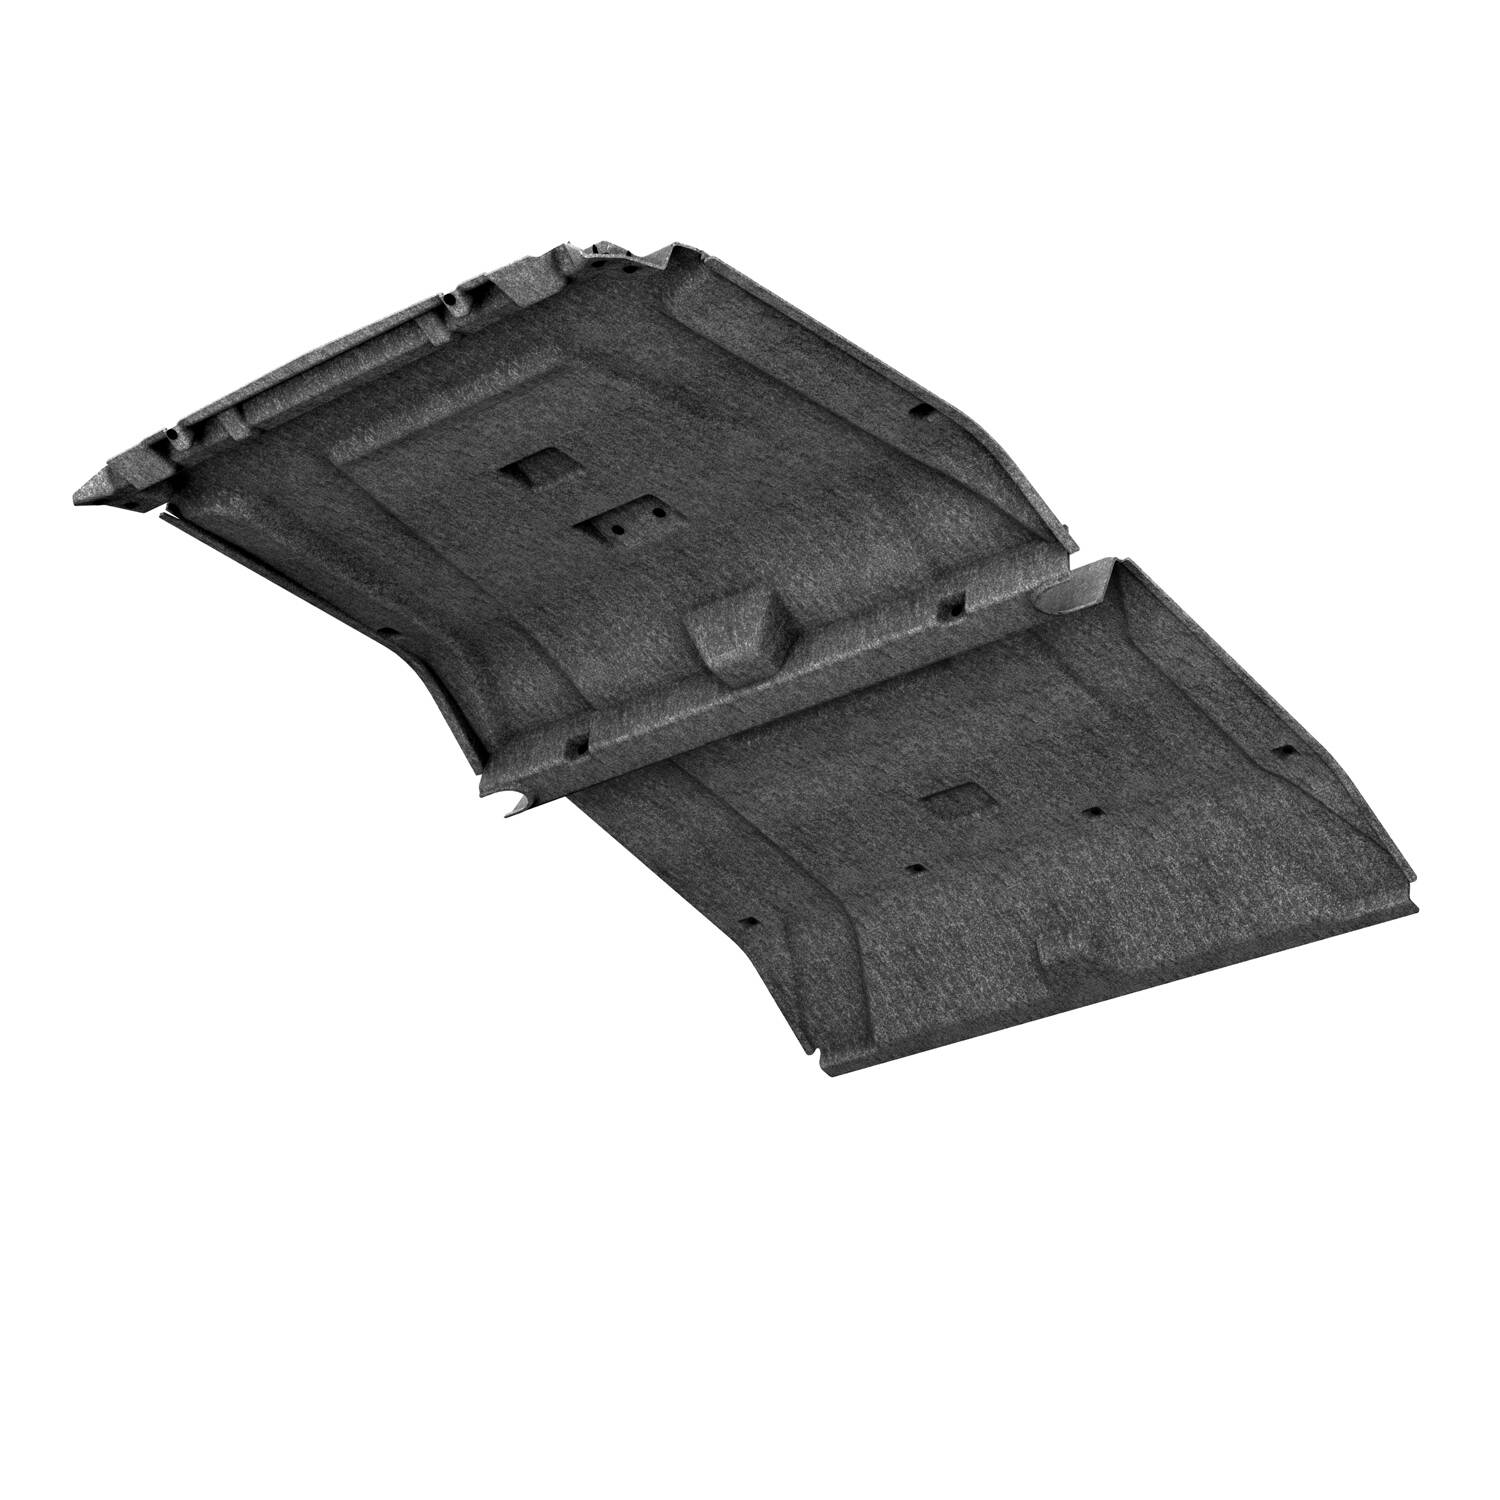 4-Seat Roof Liner